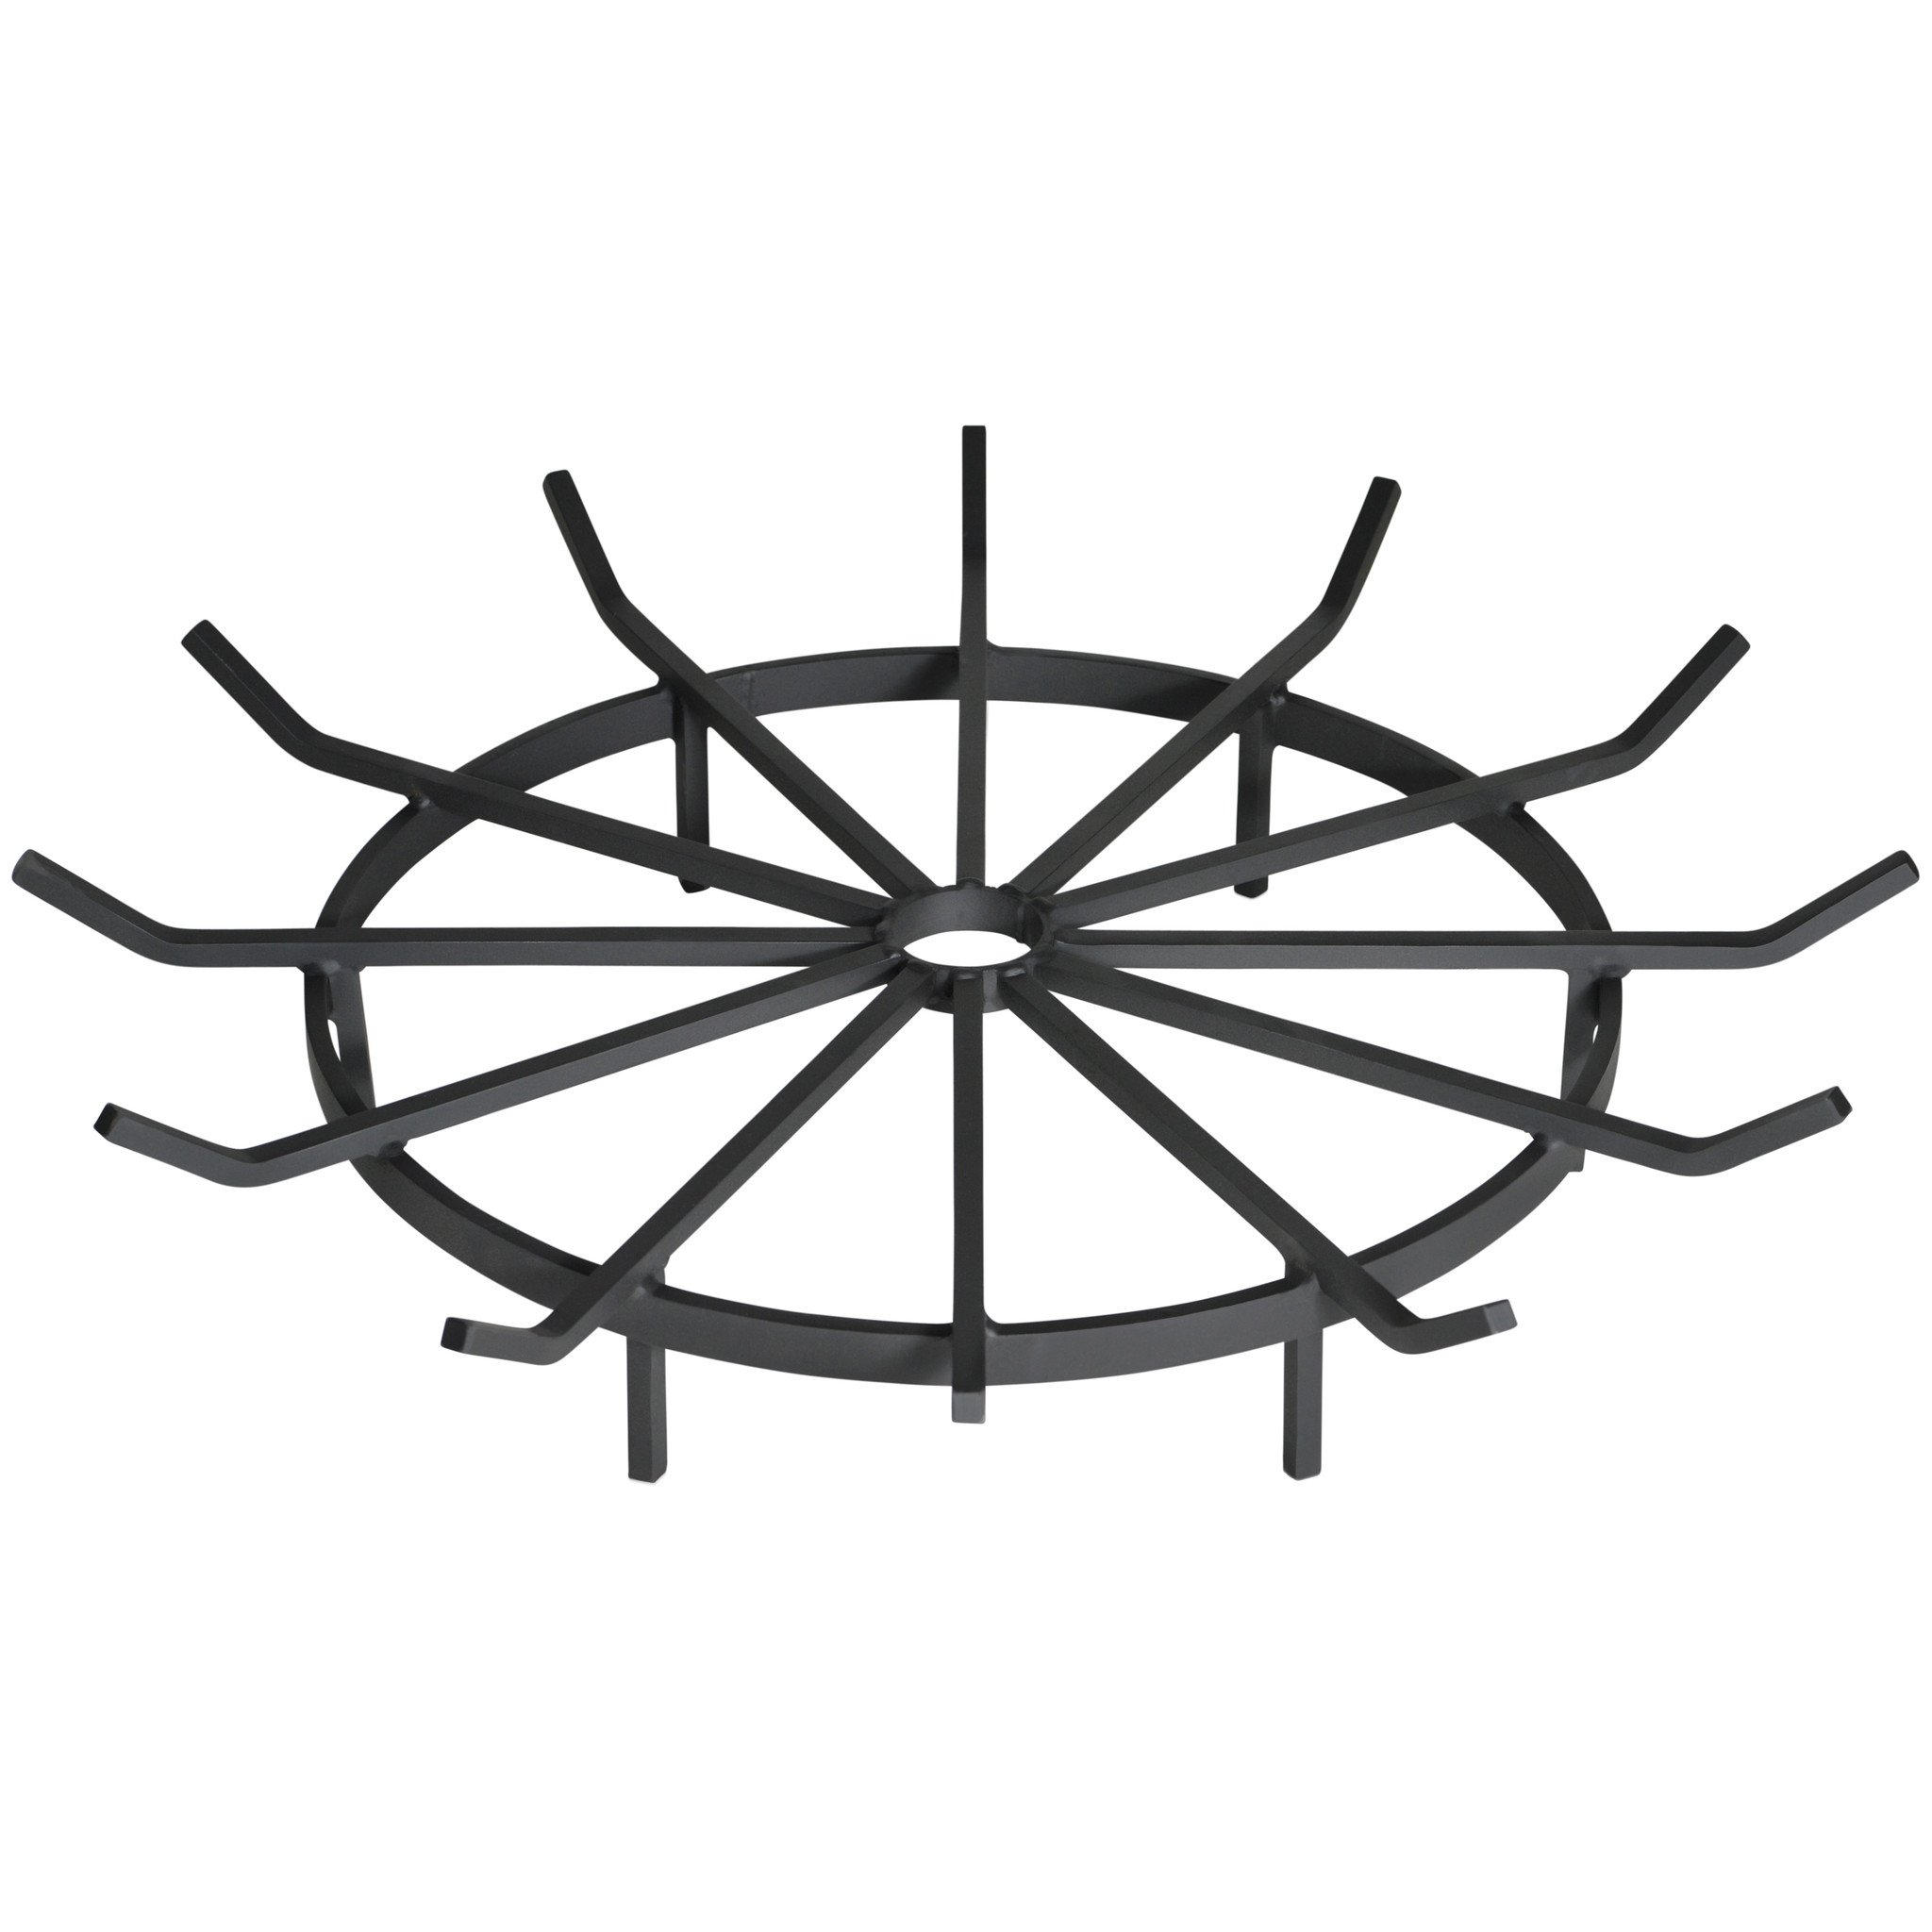 Heritage Products 28 Inch Wagon Wheel Fire Pit Grate - Made in the USA